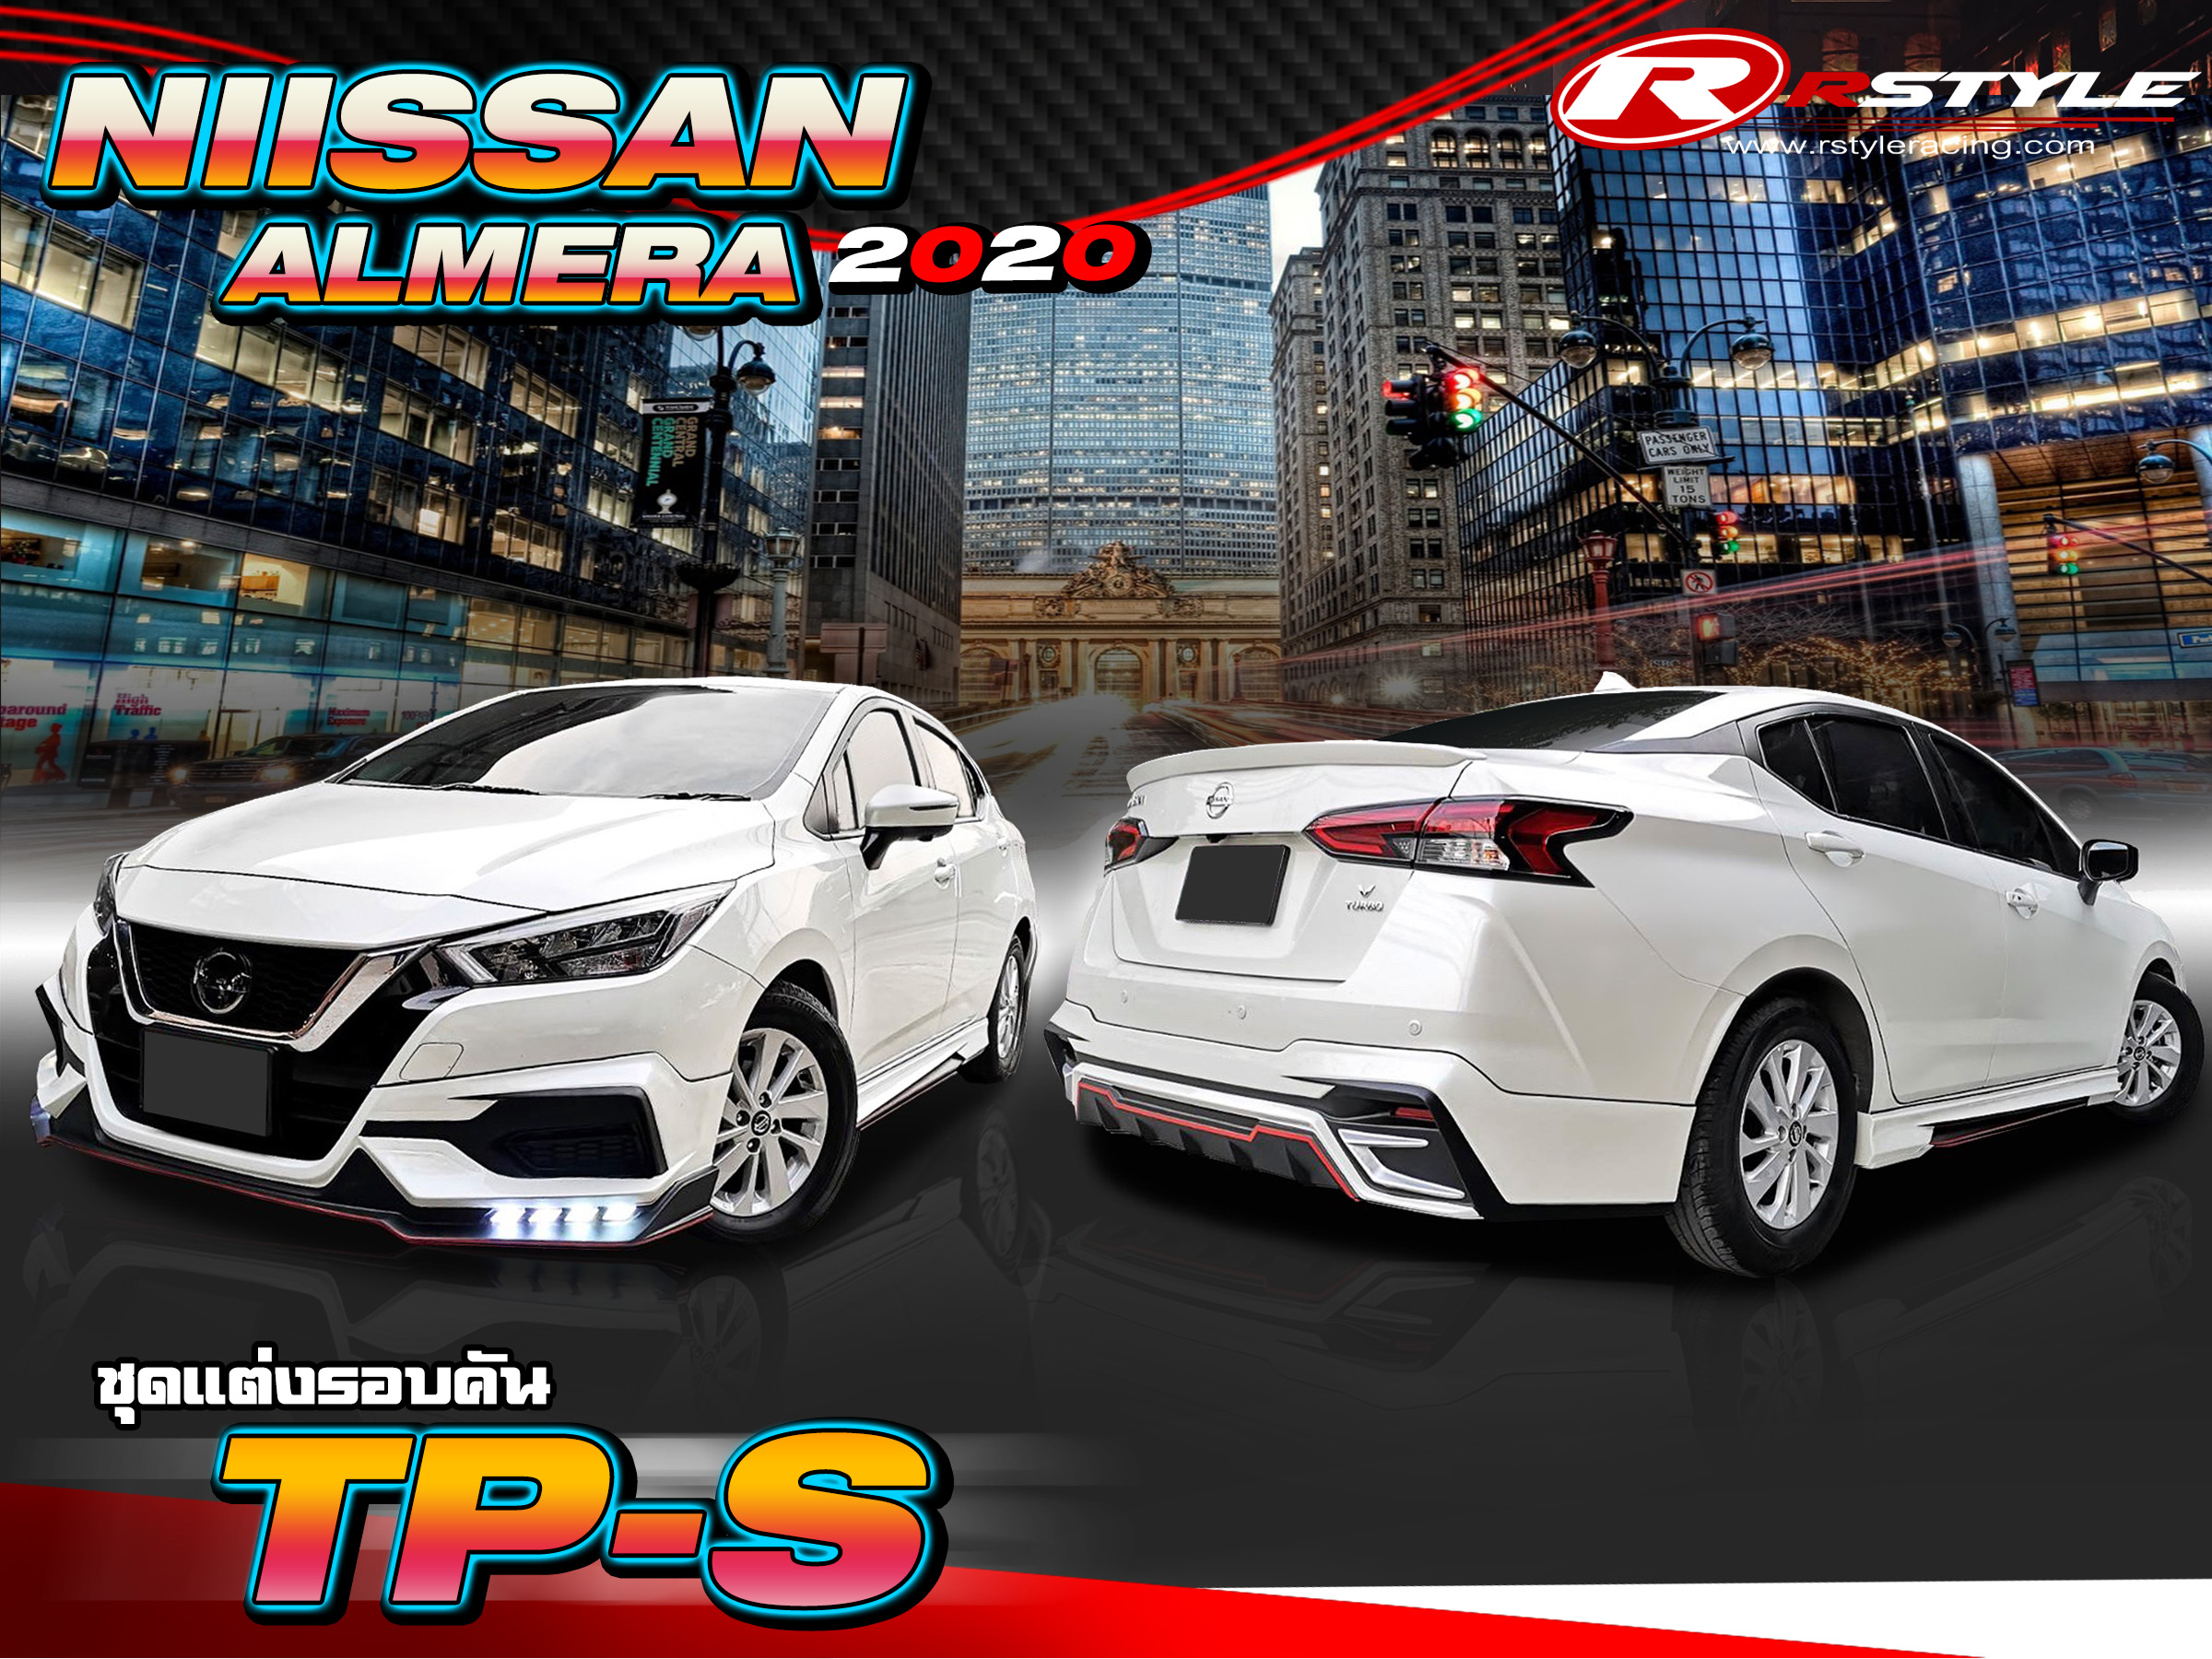 Body Kit For Nissan Almera 2020 Tp S Style Rstyle Racing